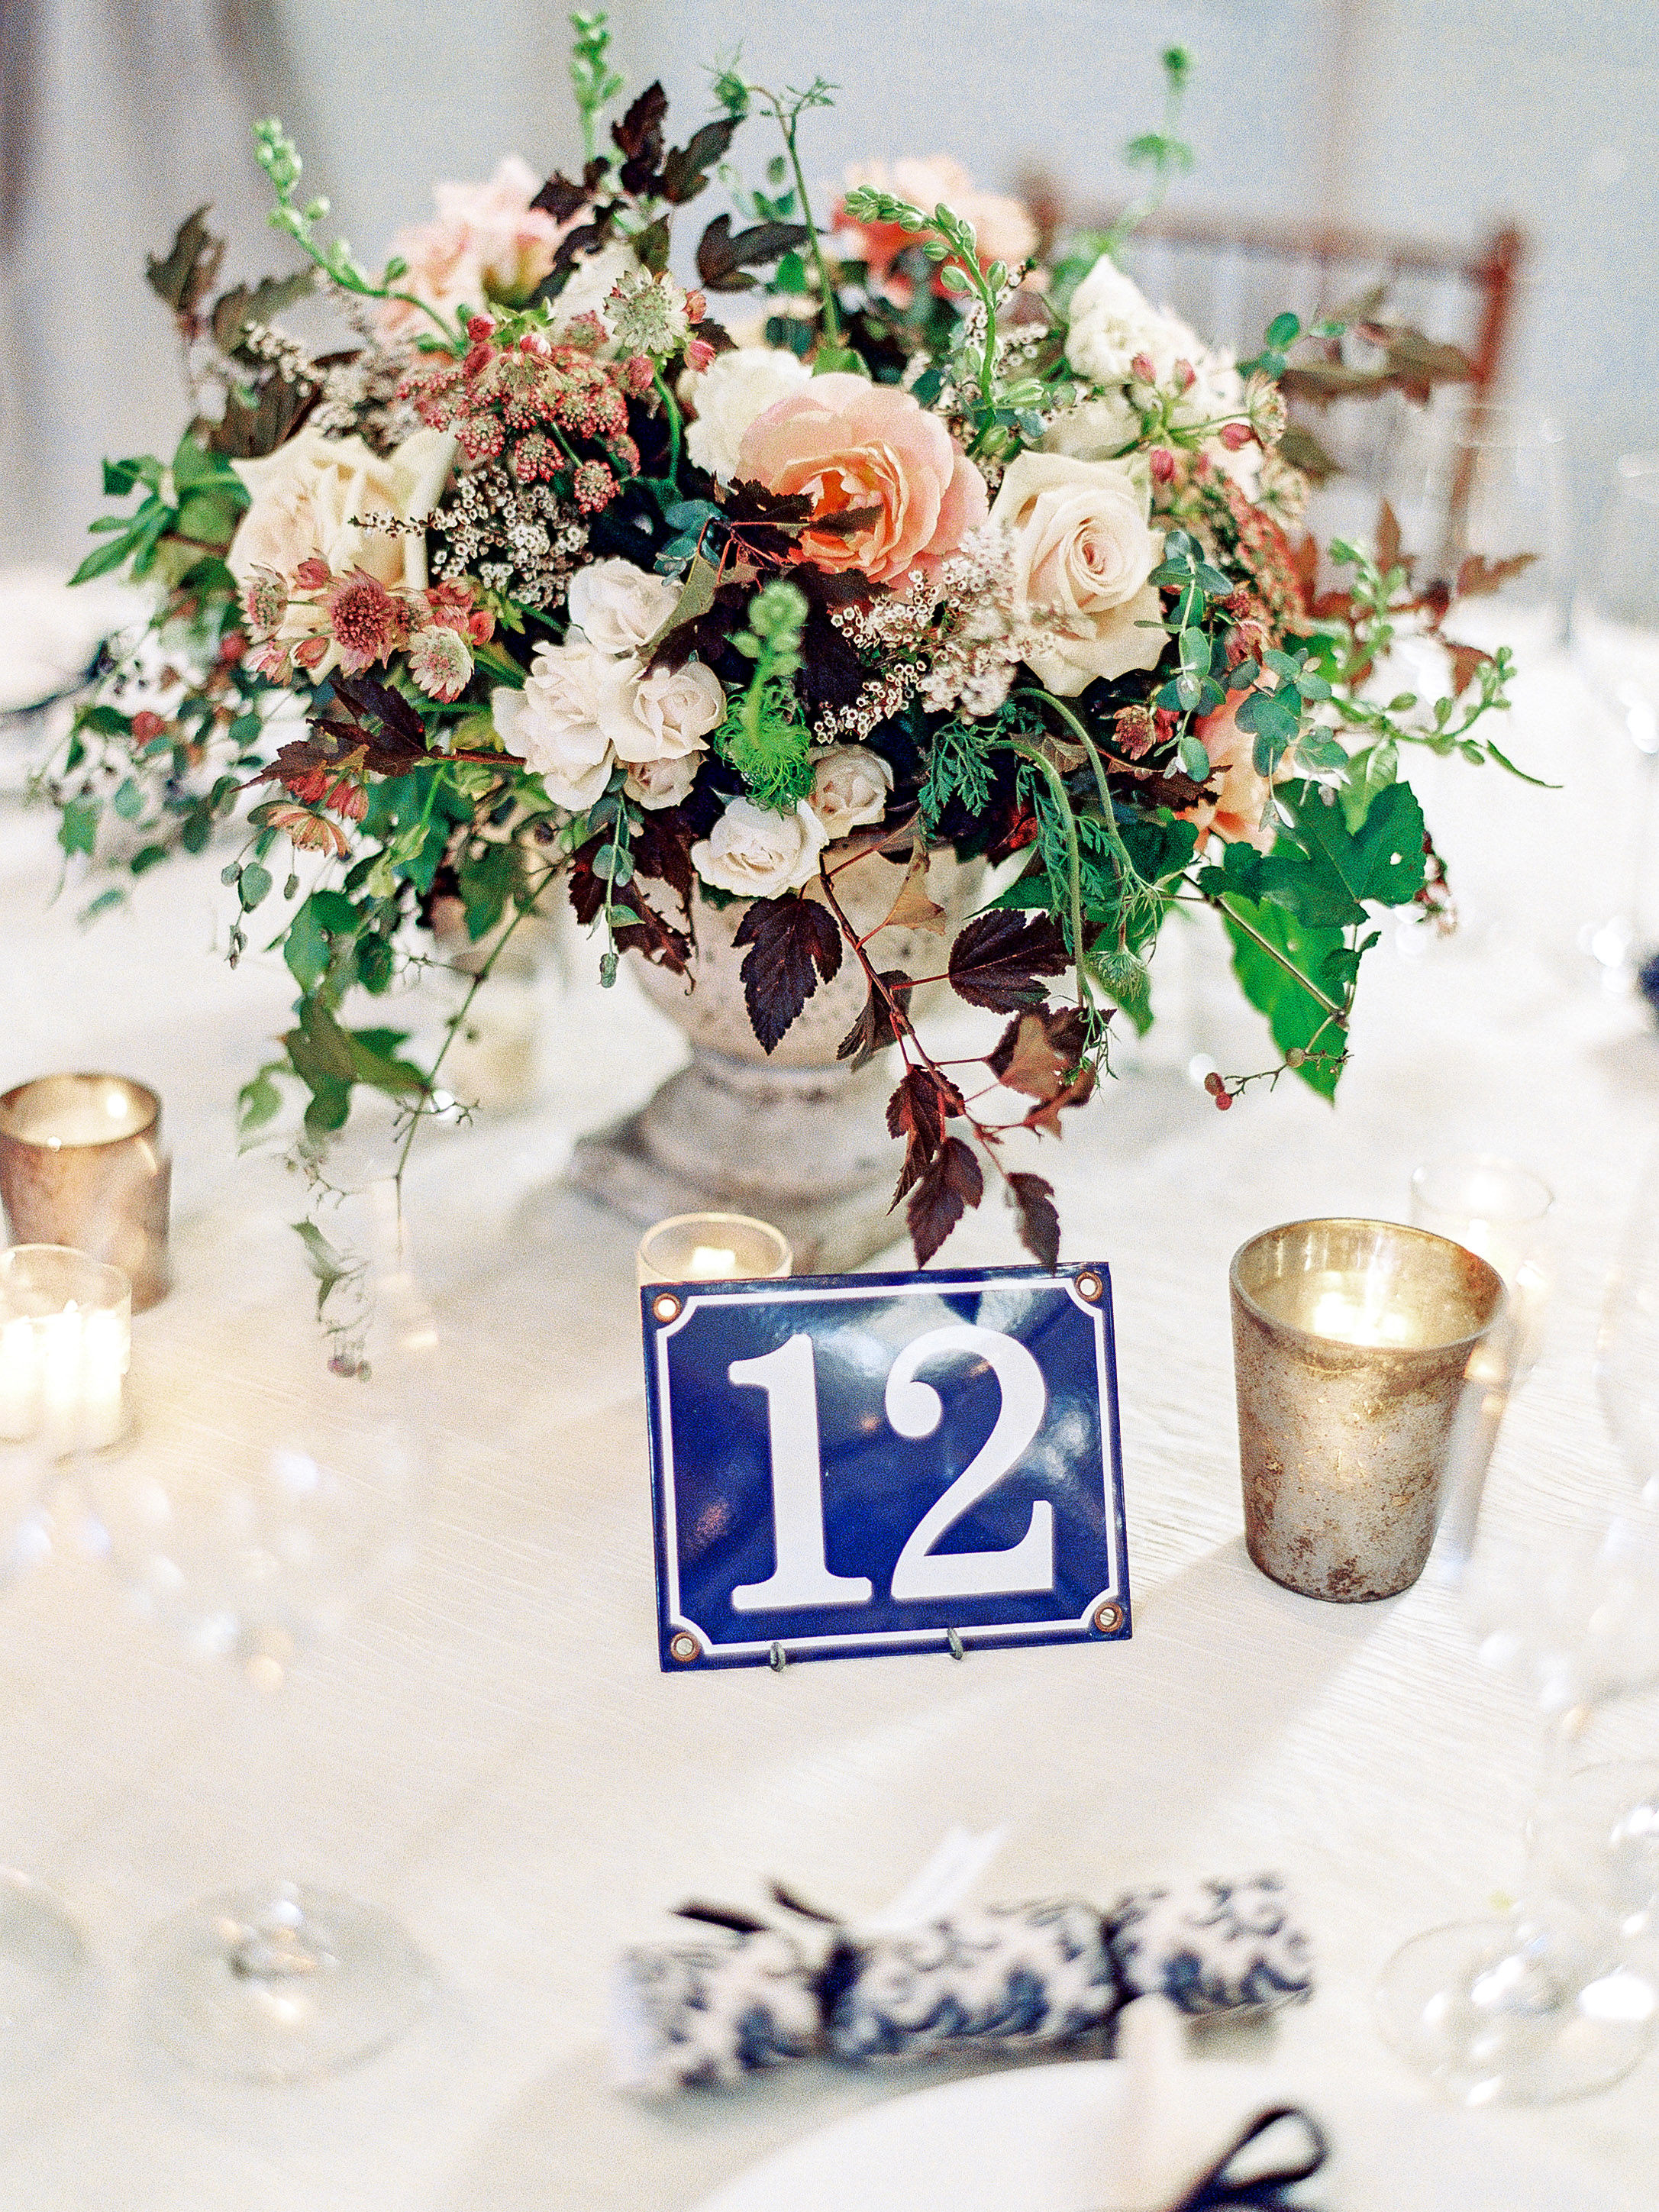 julianne aaron wedding table number centerpiece